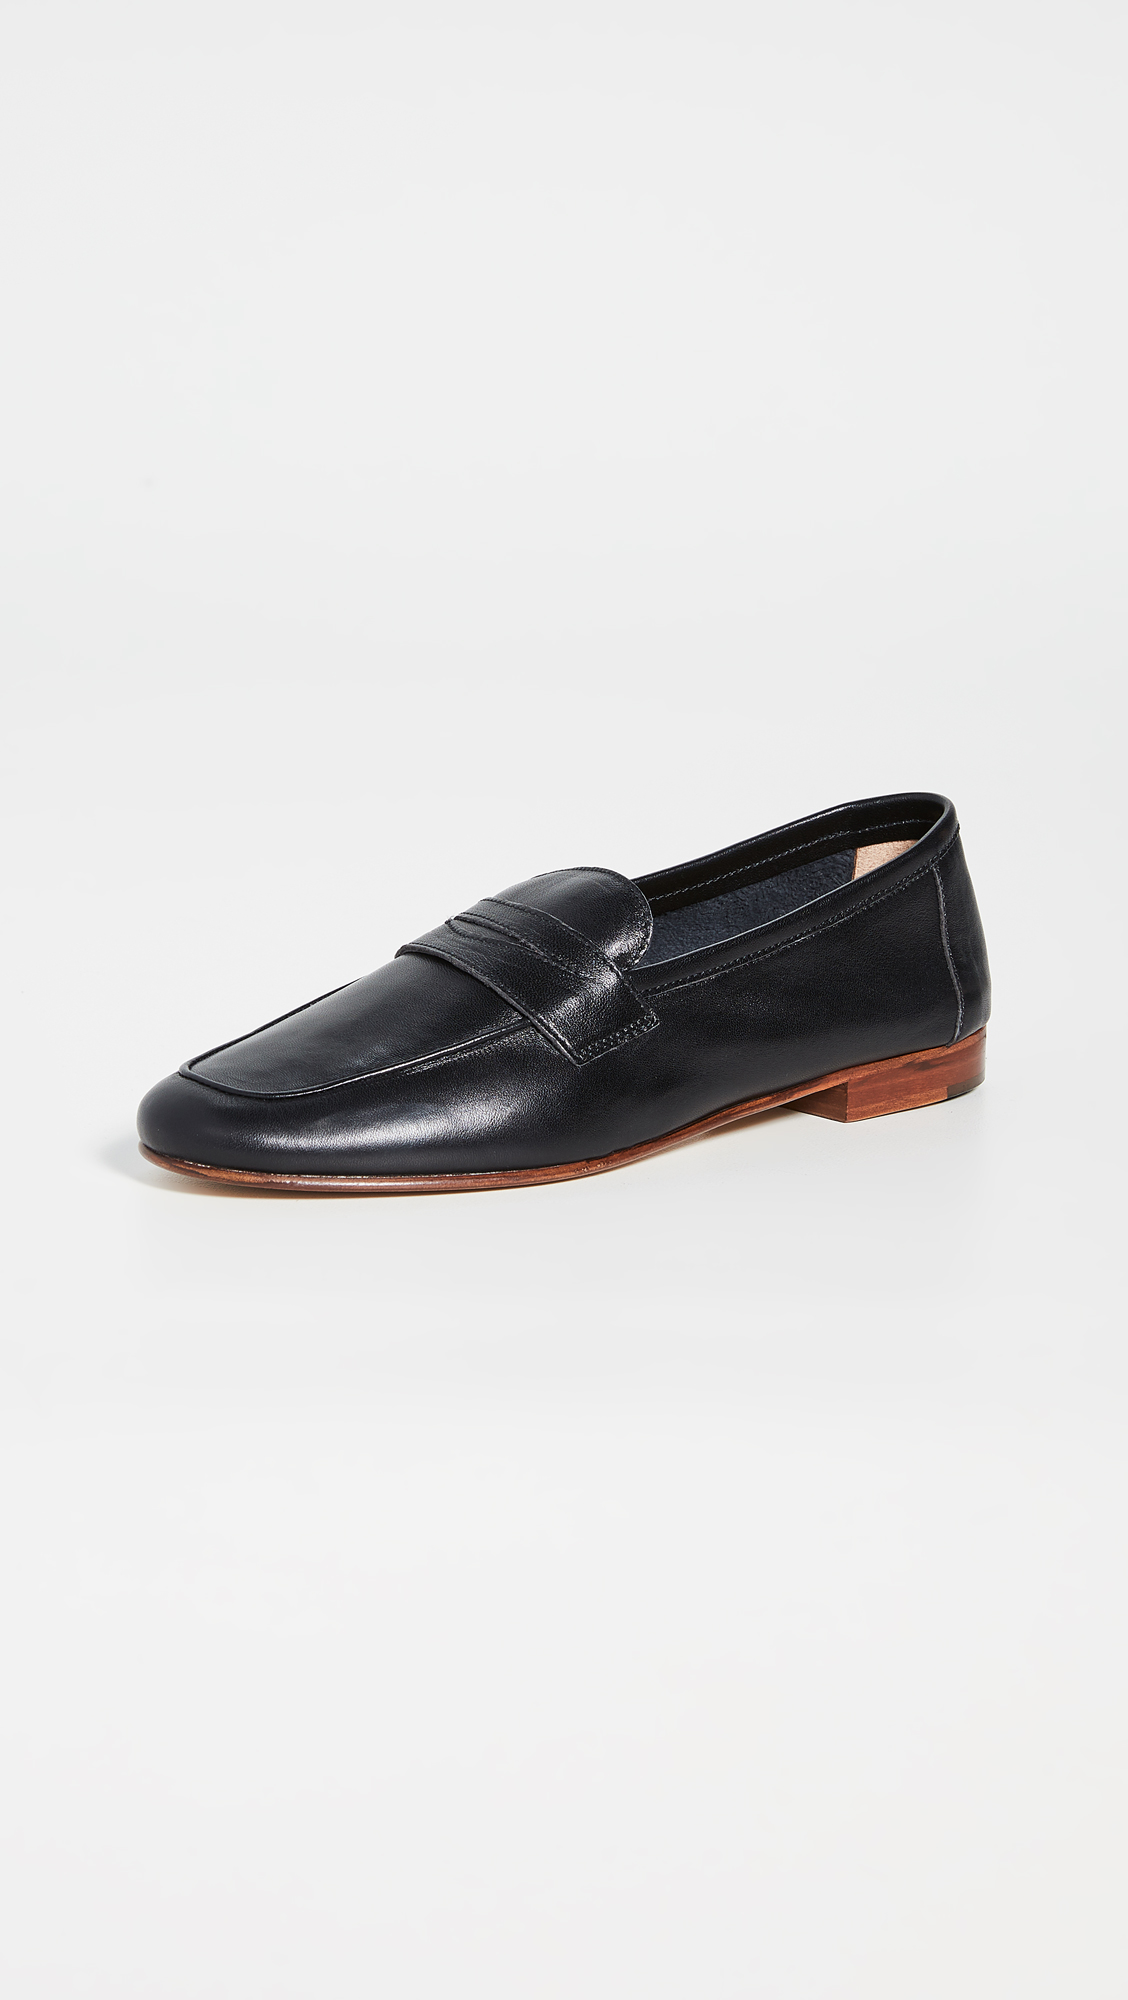 Classic Black Leather Loafer